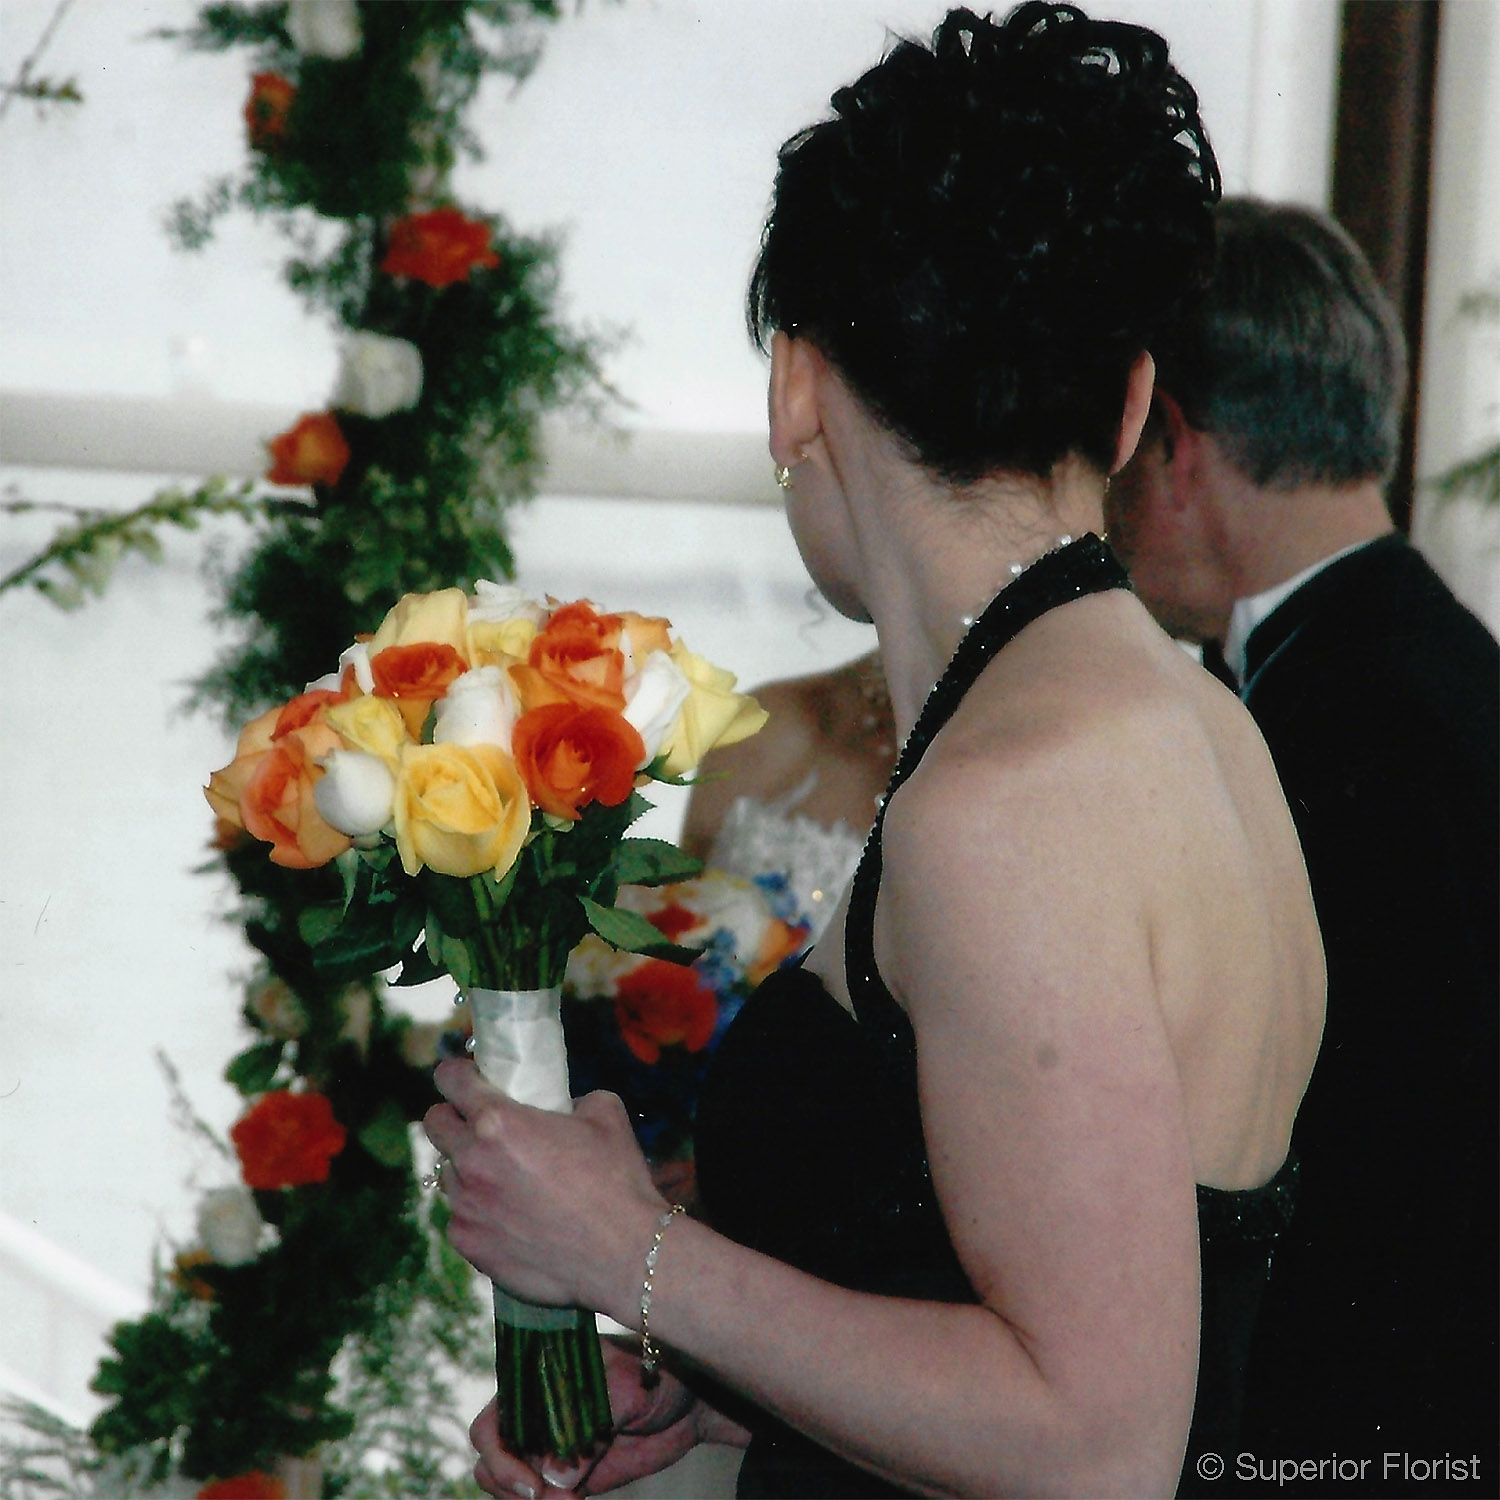 Superior Florist – Weddings – Personal Flowers: Simple, hand tied bridal bouquet of multi-colored roses.